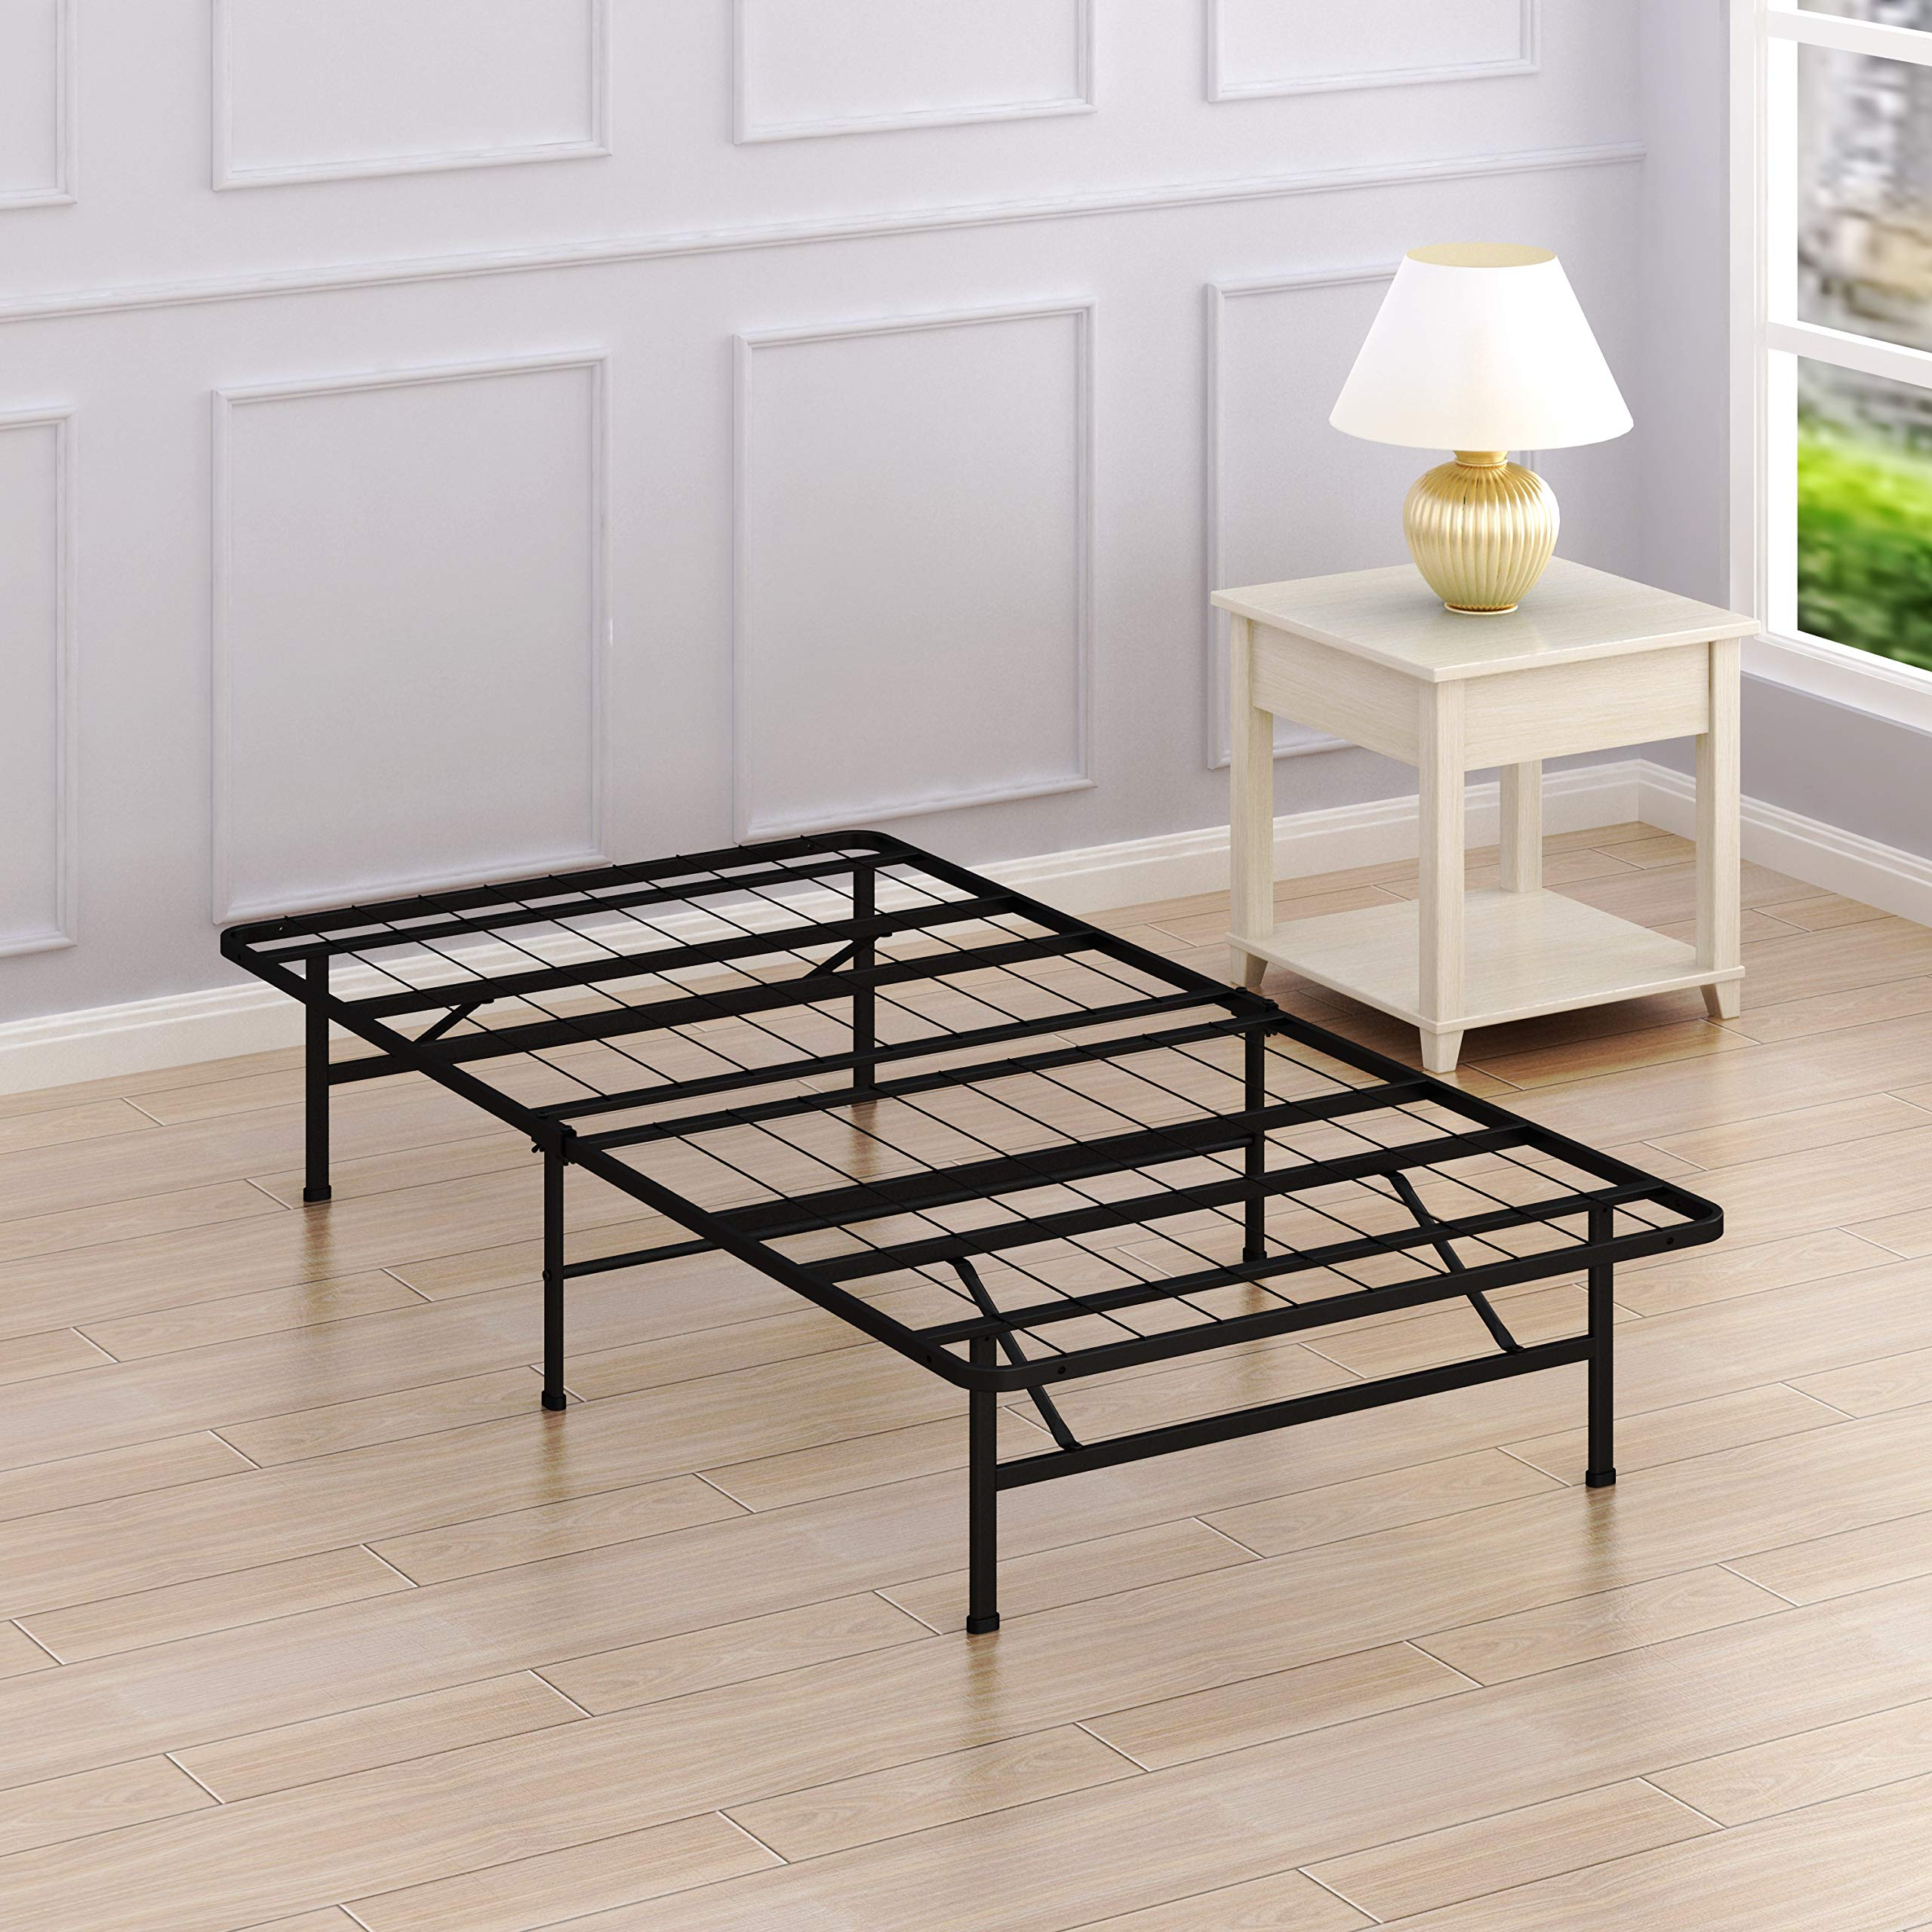 Simple Houseware Mattress Foundation Platform